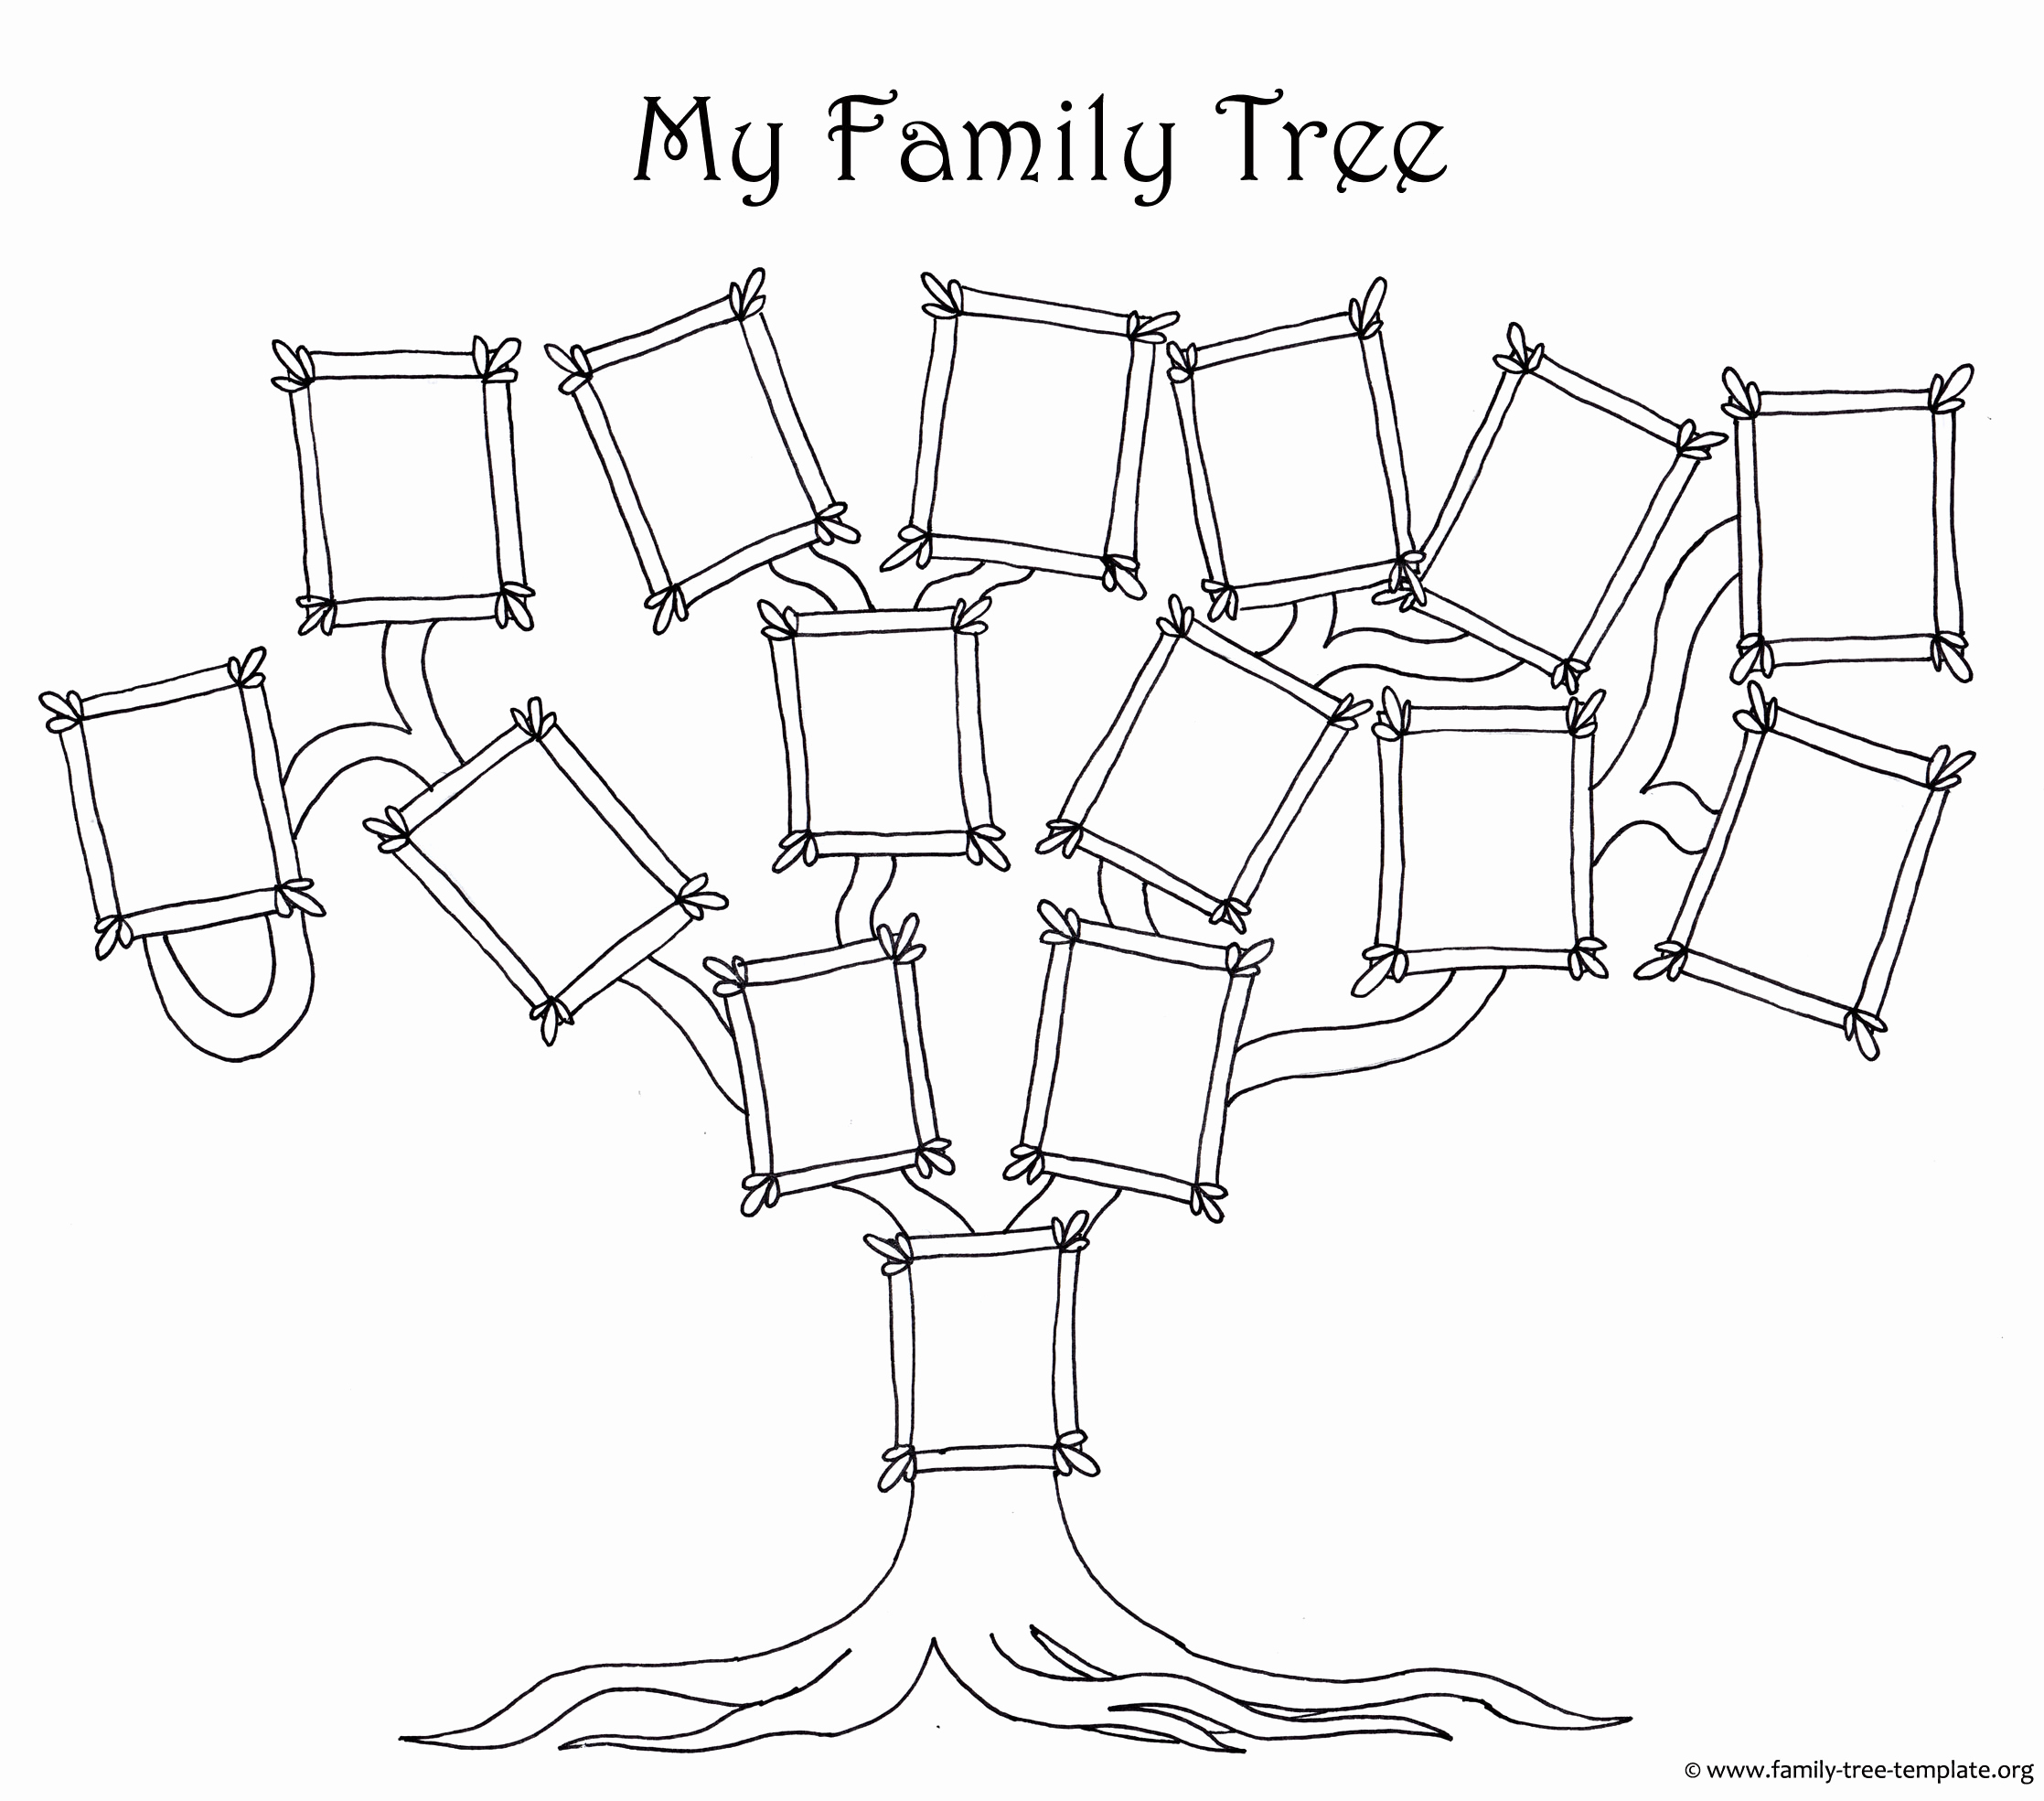 Simple Family Tree Template Luxury Free Family Tree Template Designs for Making Ancestry Charts